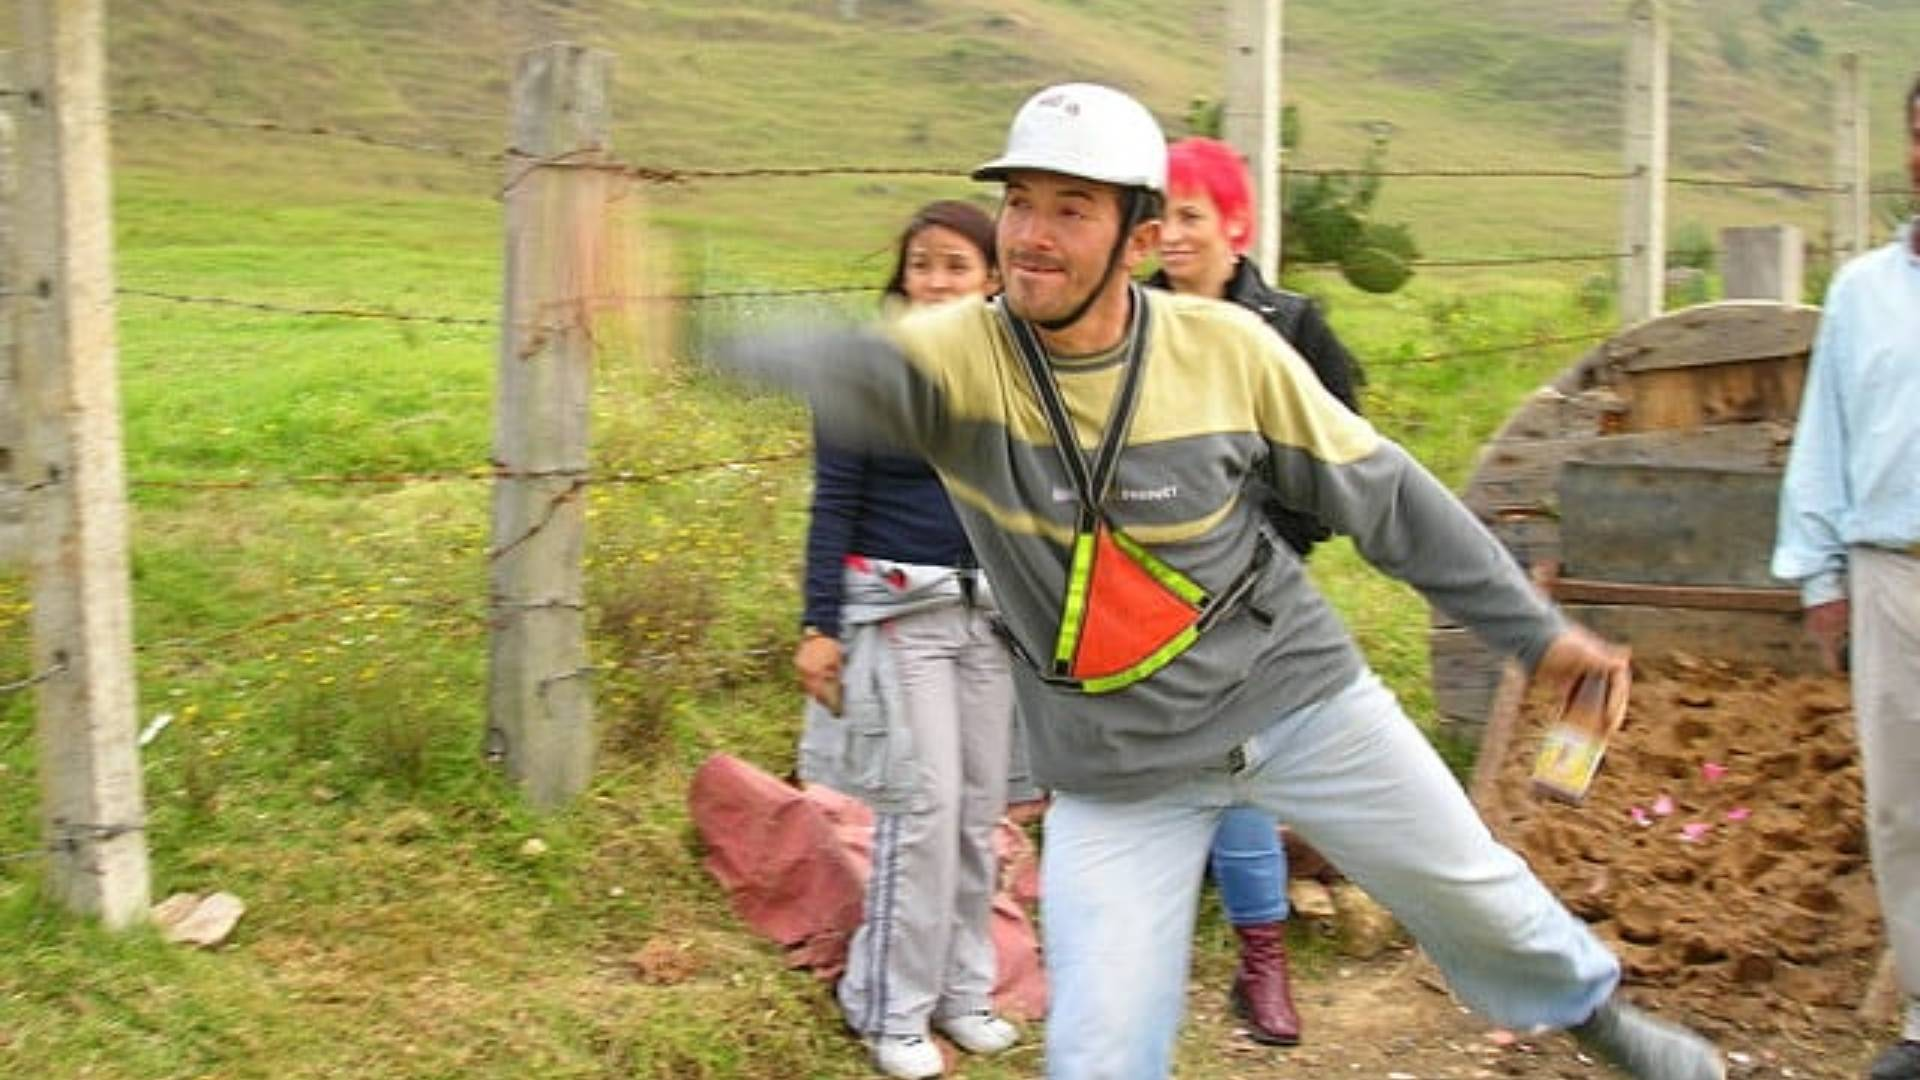 man playing the colombian sport of tejo